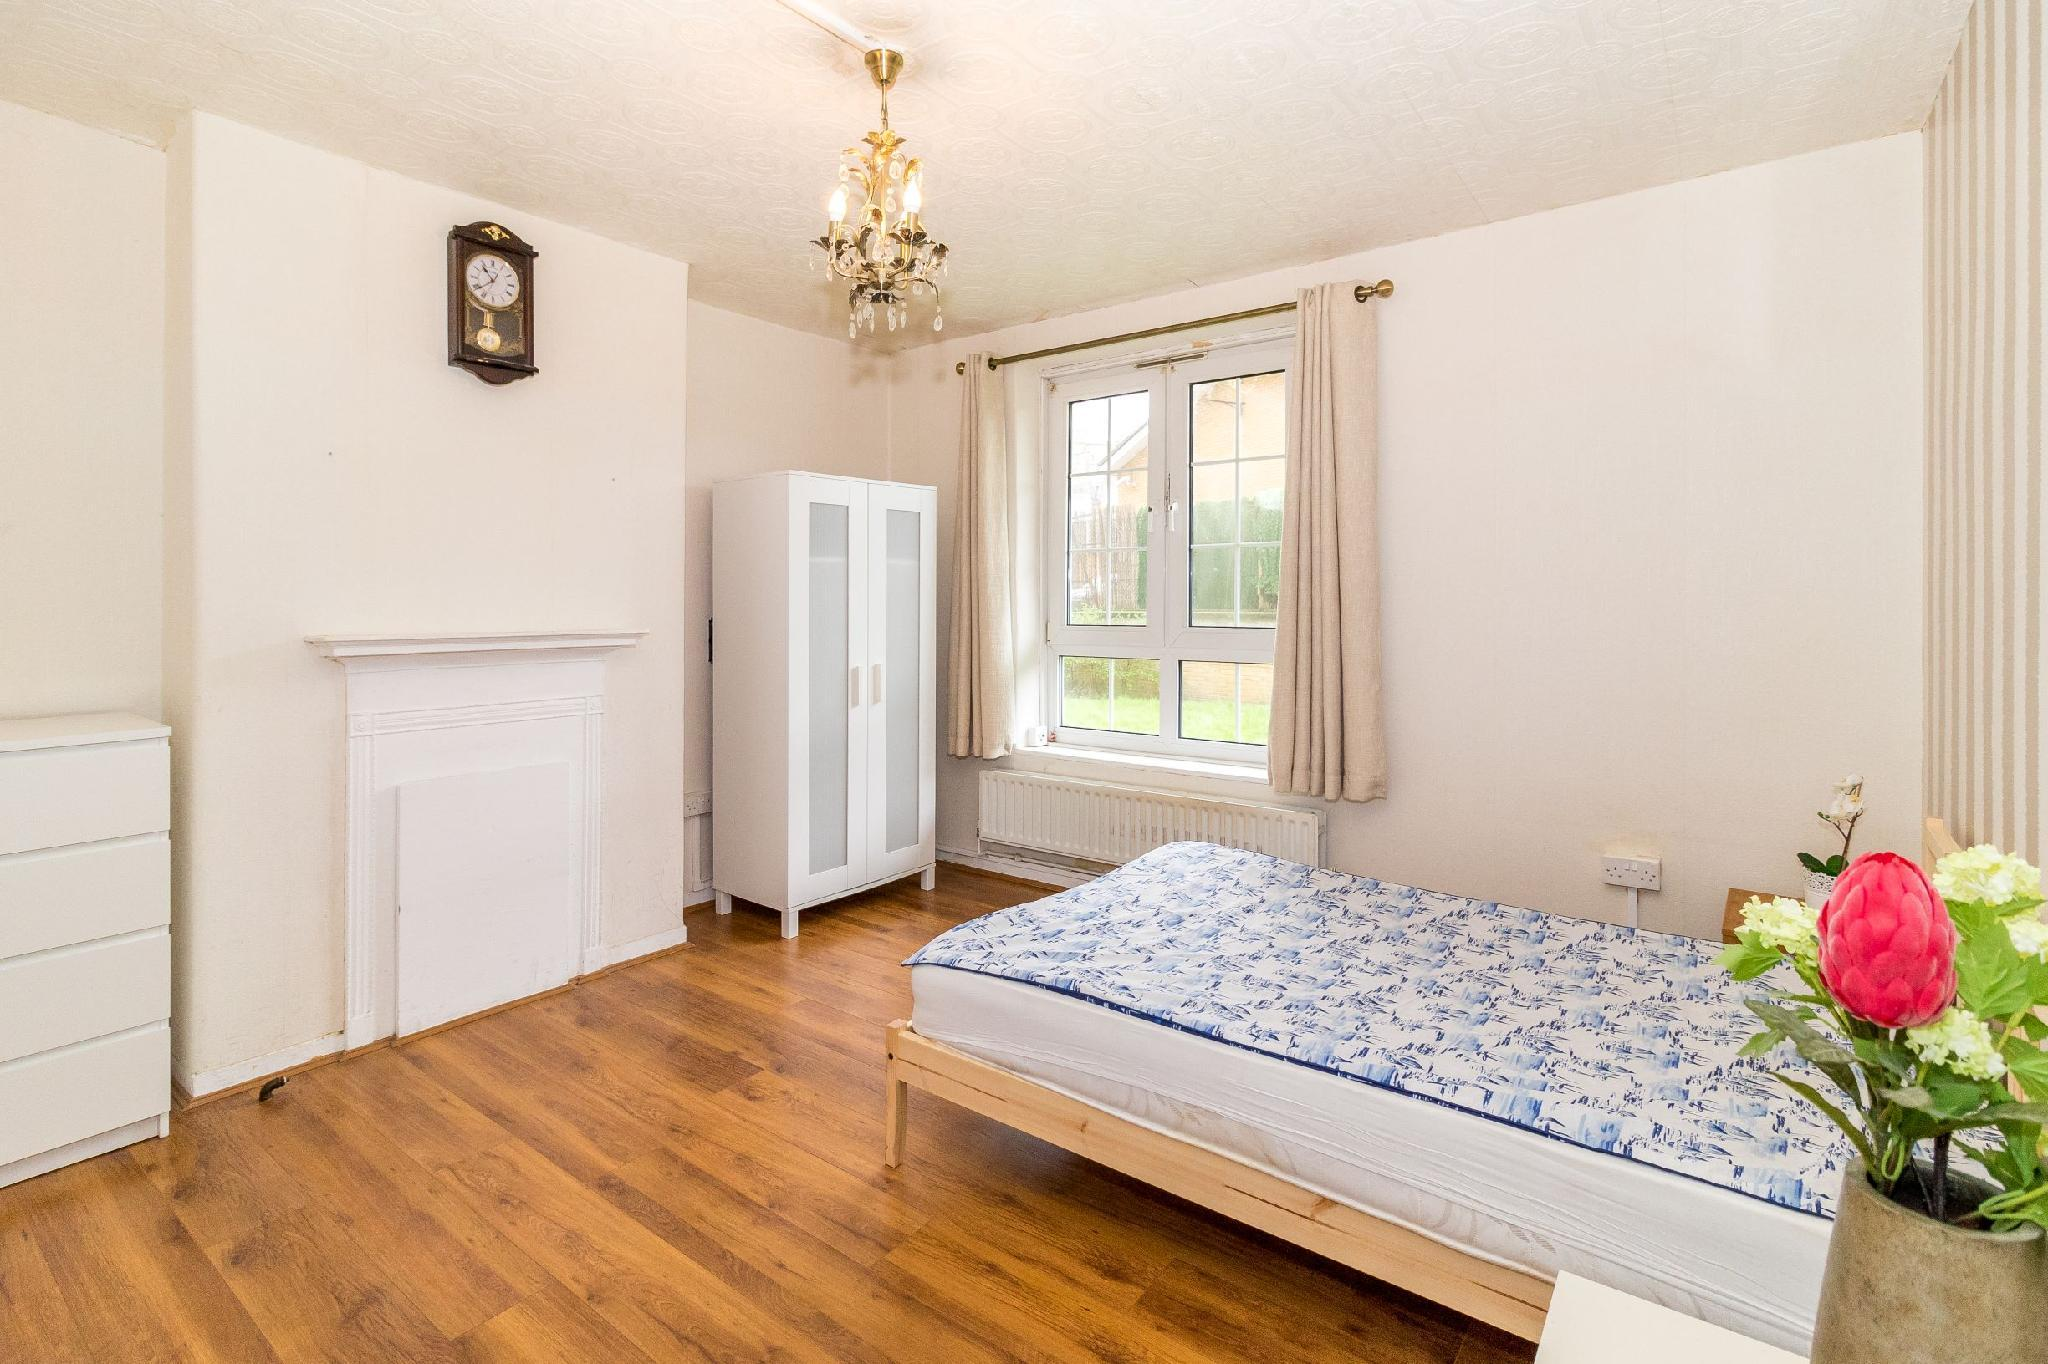 5 Bedroom Apartment In Central London